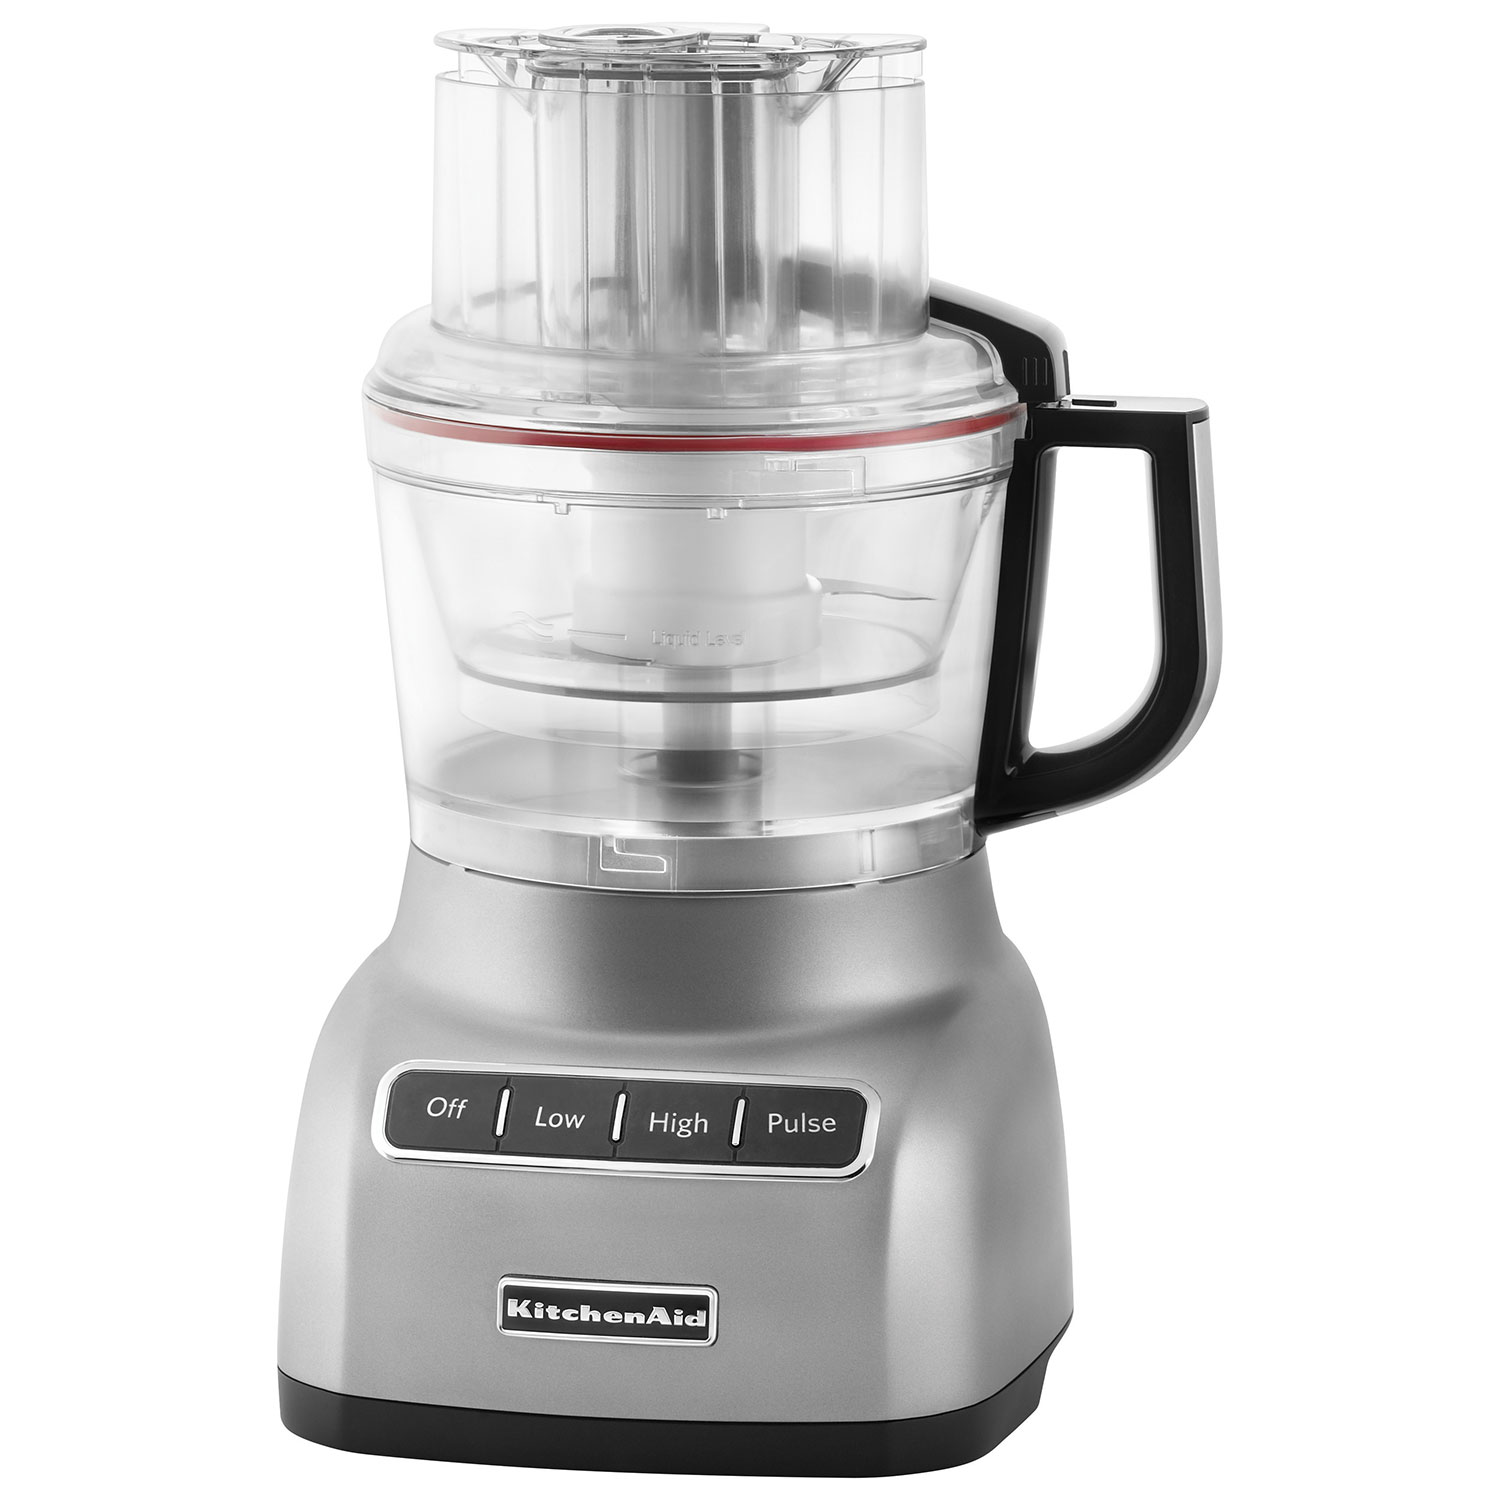 Best Buy] KitchenAid 9-cup food processor $120 (or $108 PM w/ Home ...